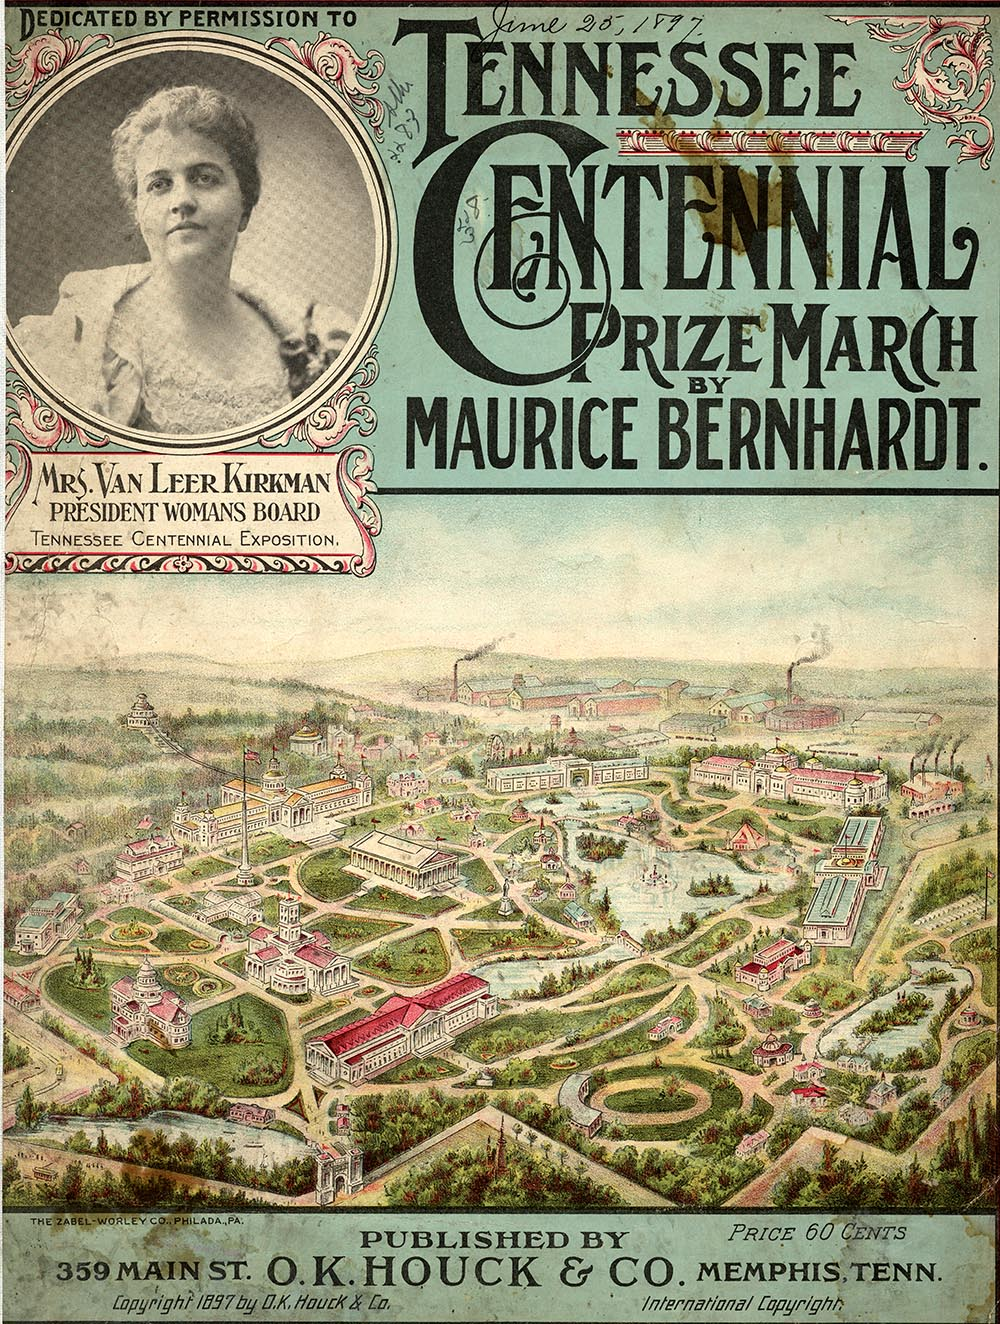 Sheet music featuring an aerial drawing of the Tennessee Centennial Exposition in 1897